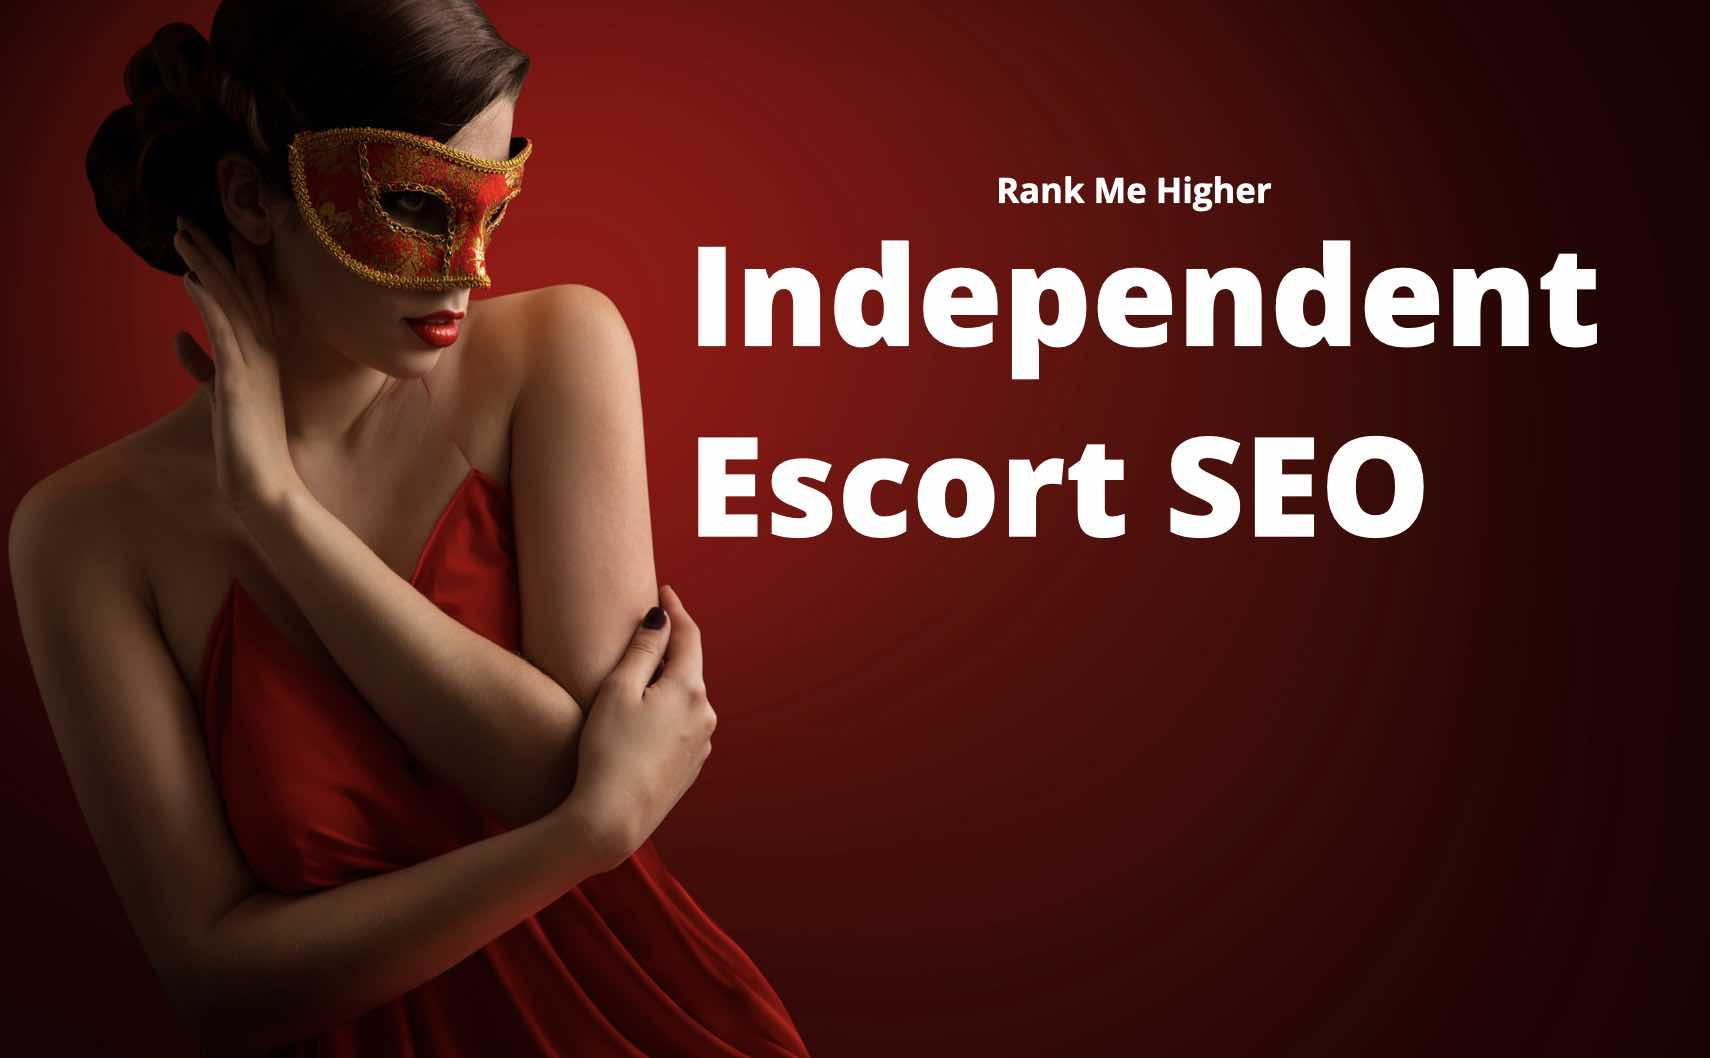 Escort SEO services